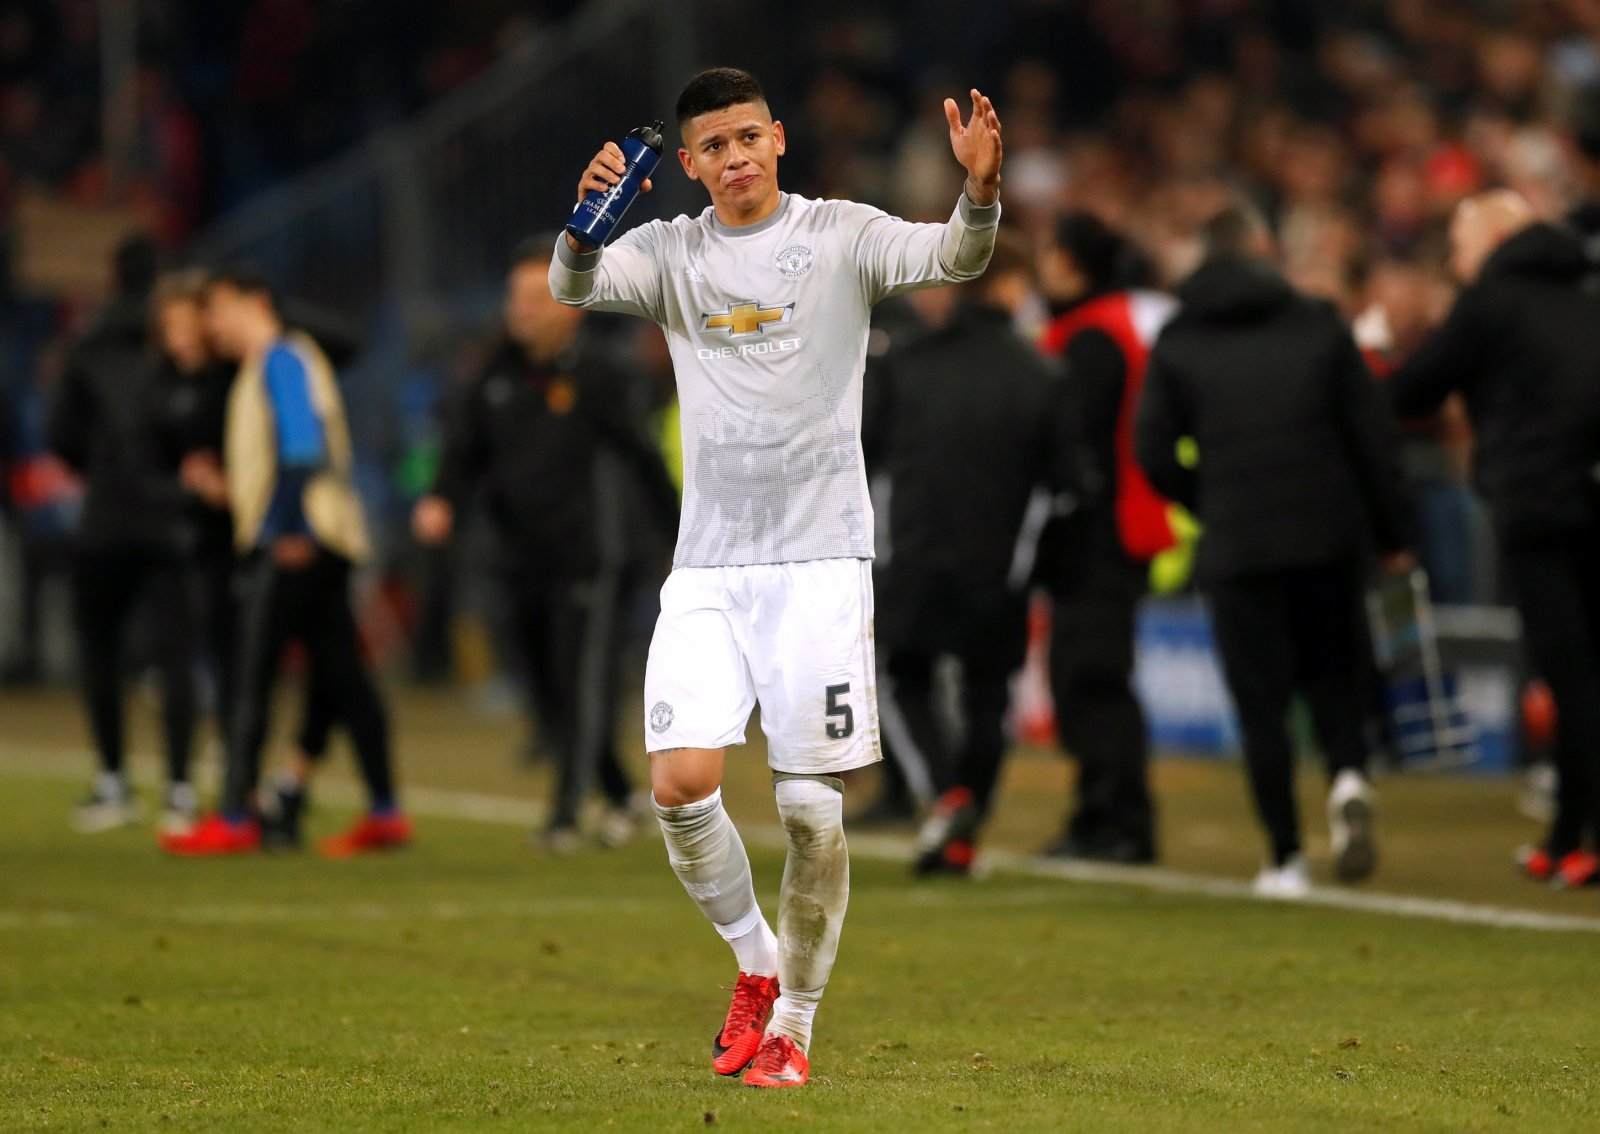 Everton would be wise to move for Manchester United's Marcos Rojo